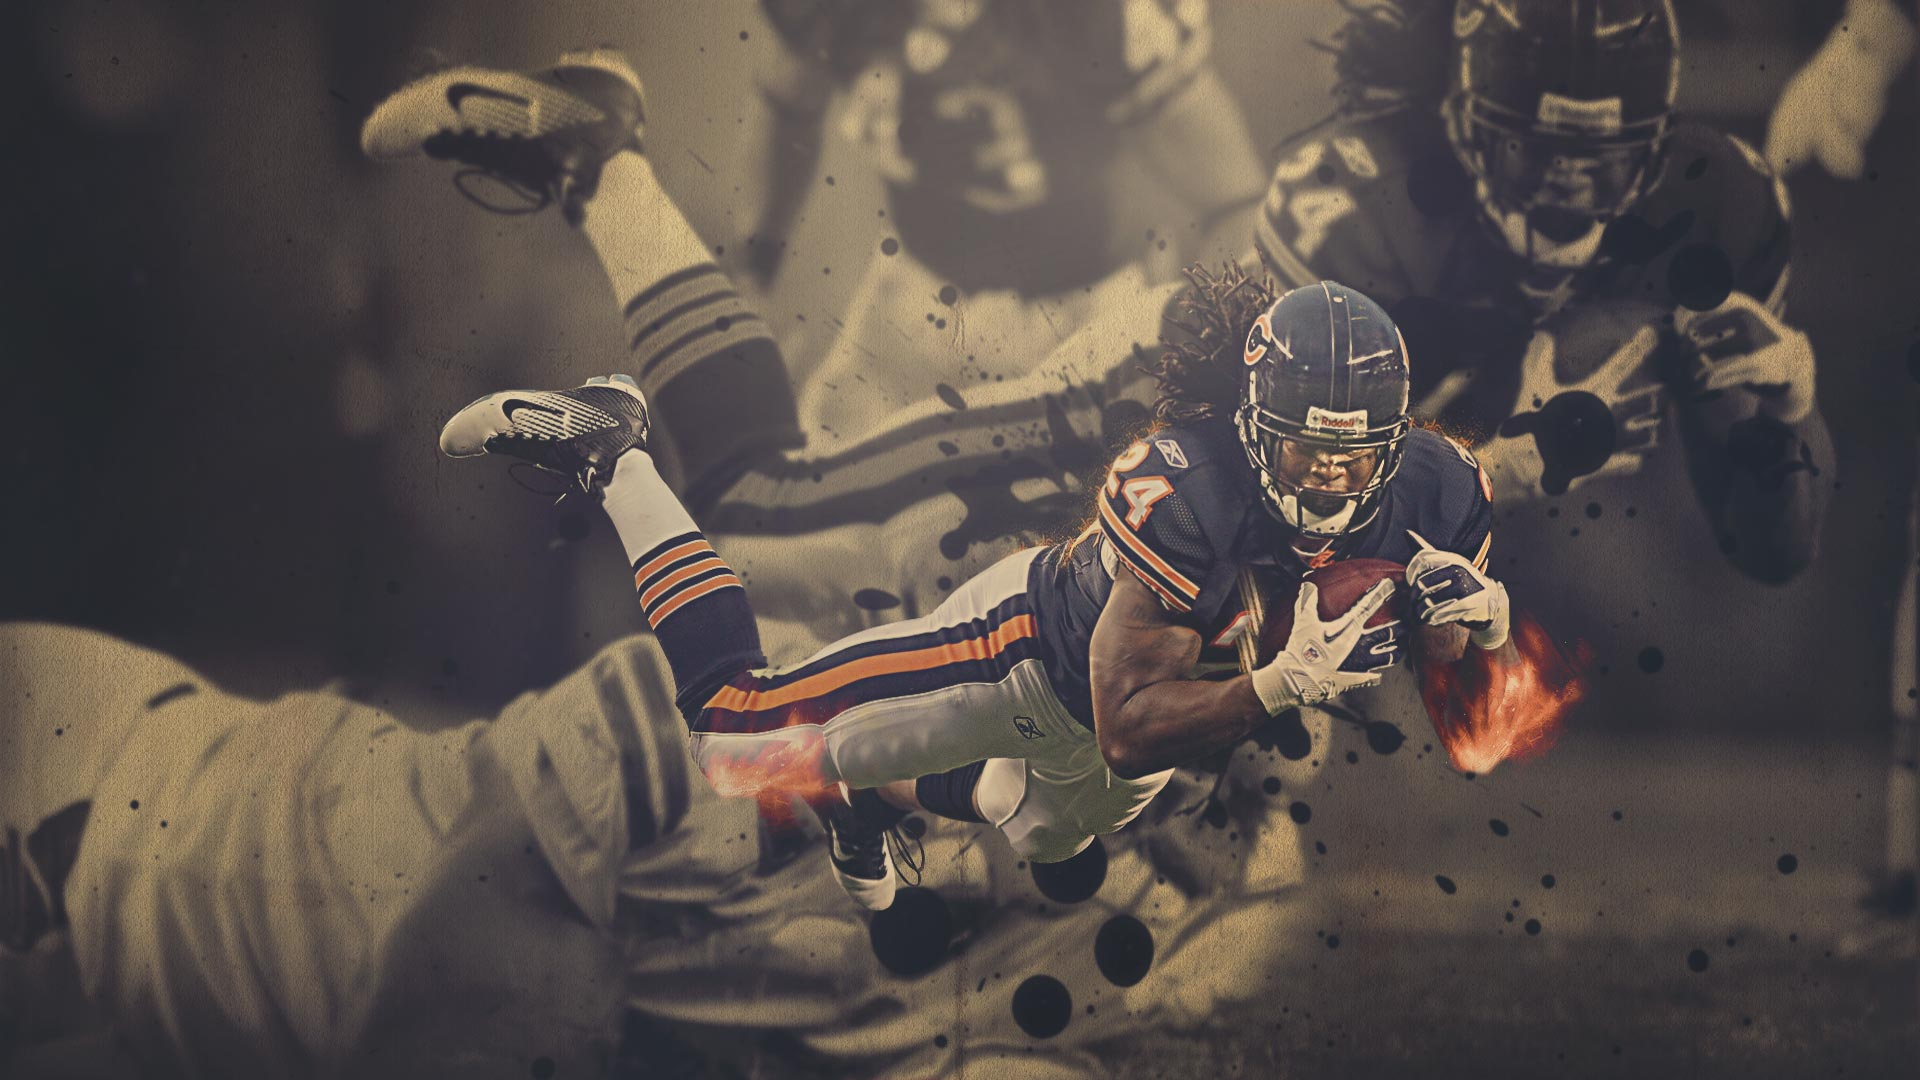 Wallpapers   Marion Barber Chicago Bears 1920x1080 wallpaper 1920x1080